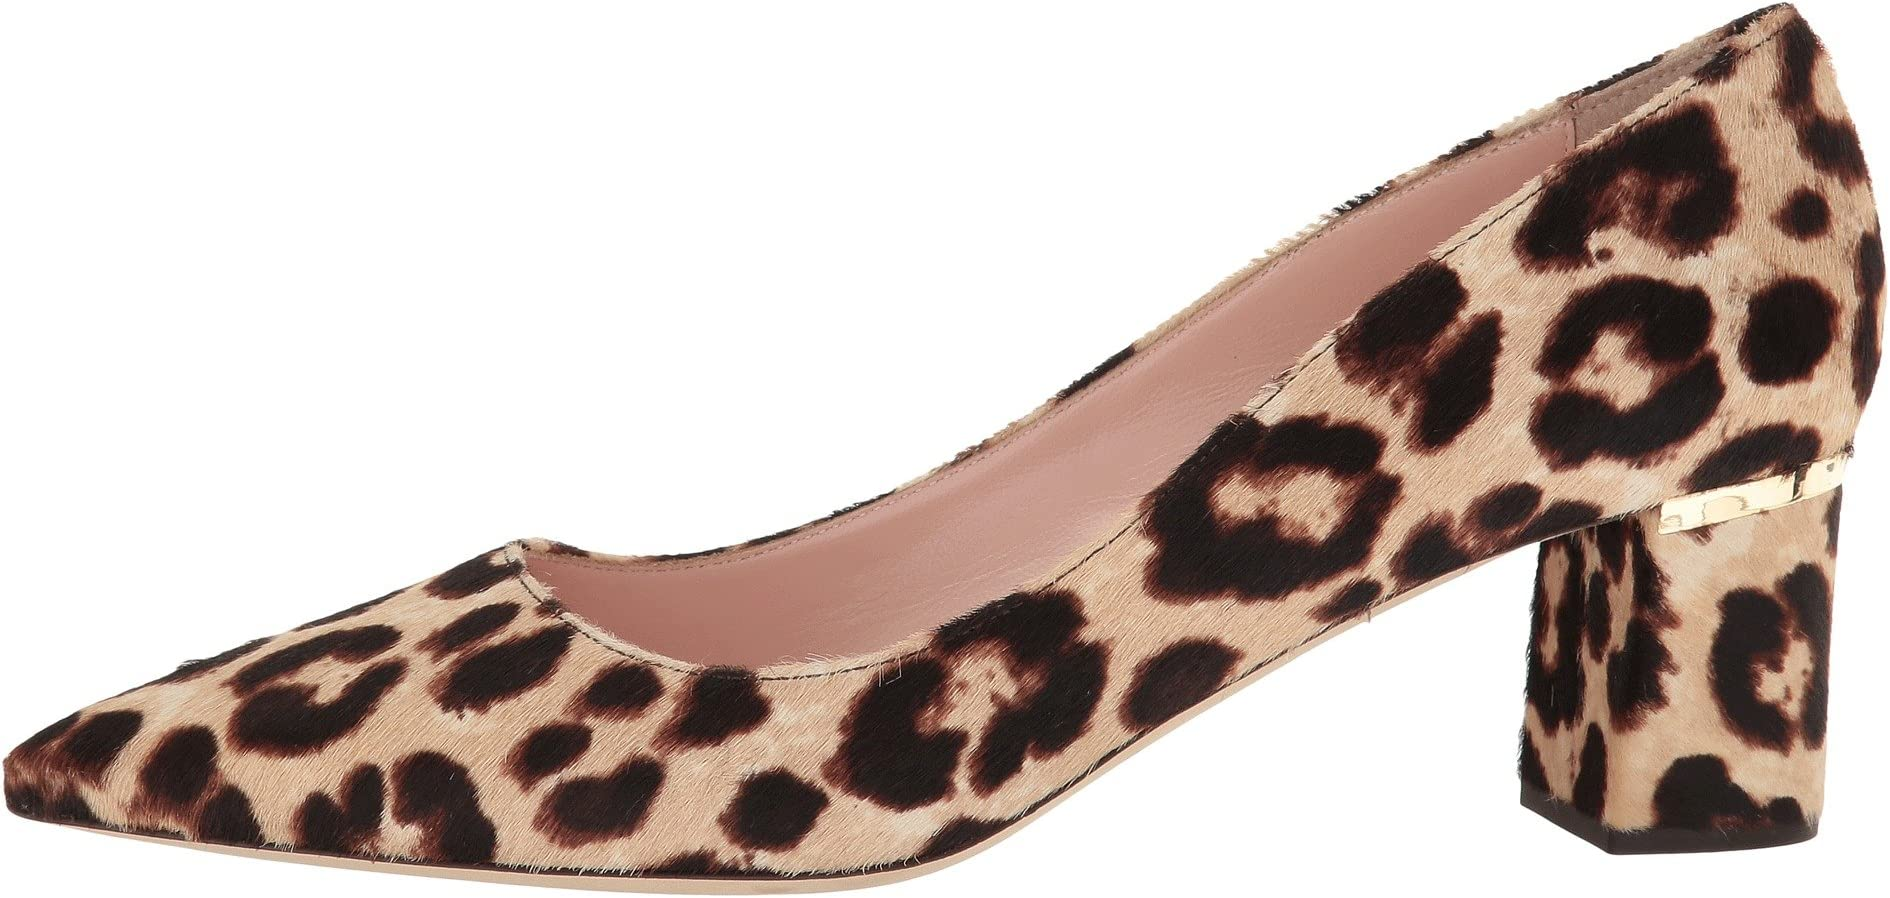 Kate Spade New York Milan Too | Women's shoes | 2020 Newest